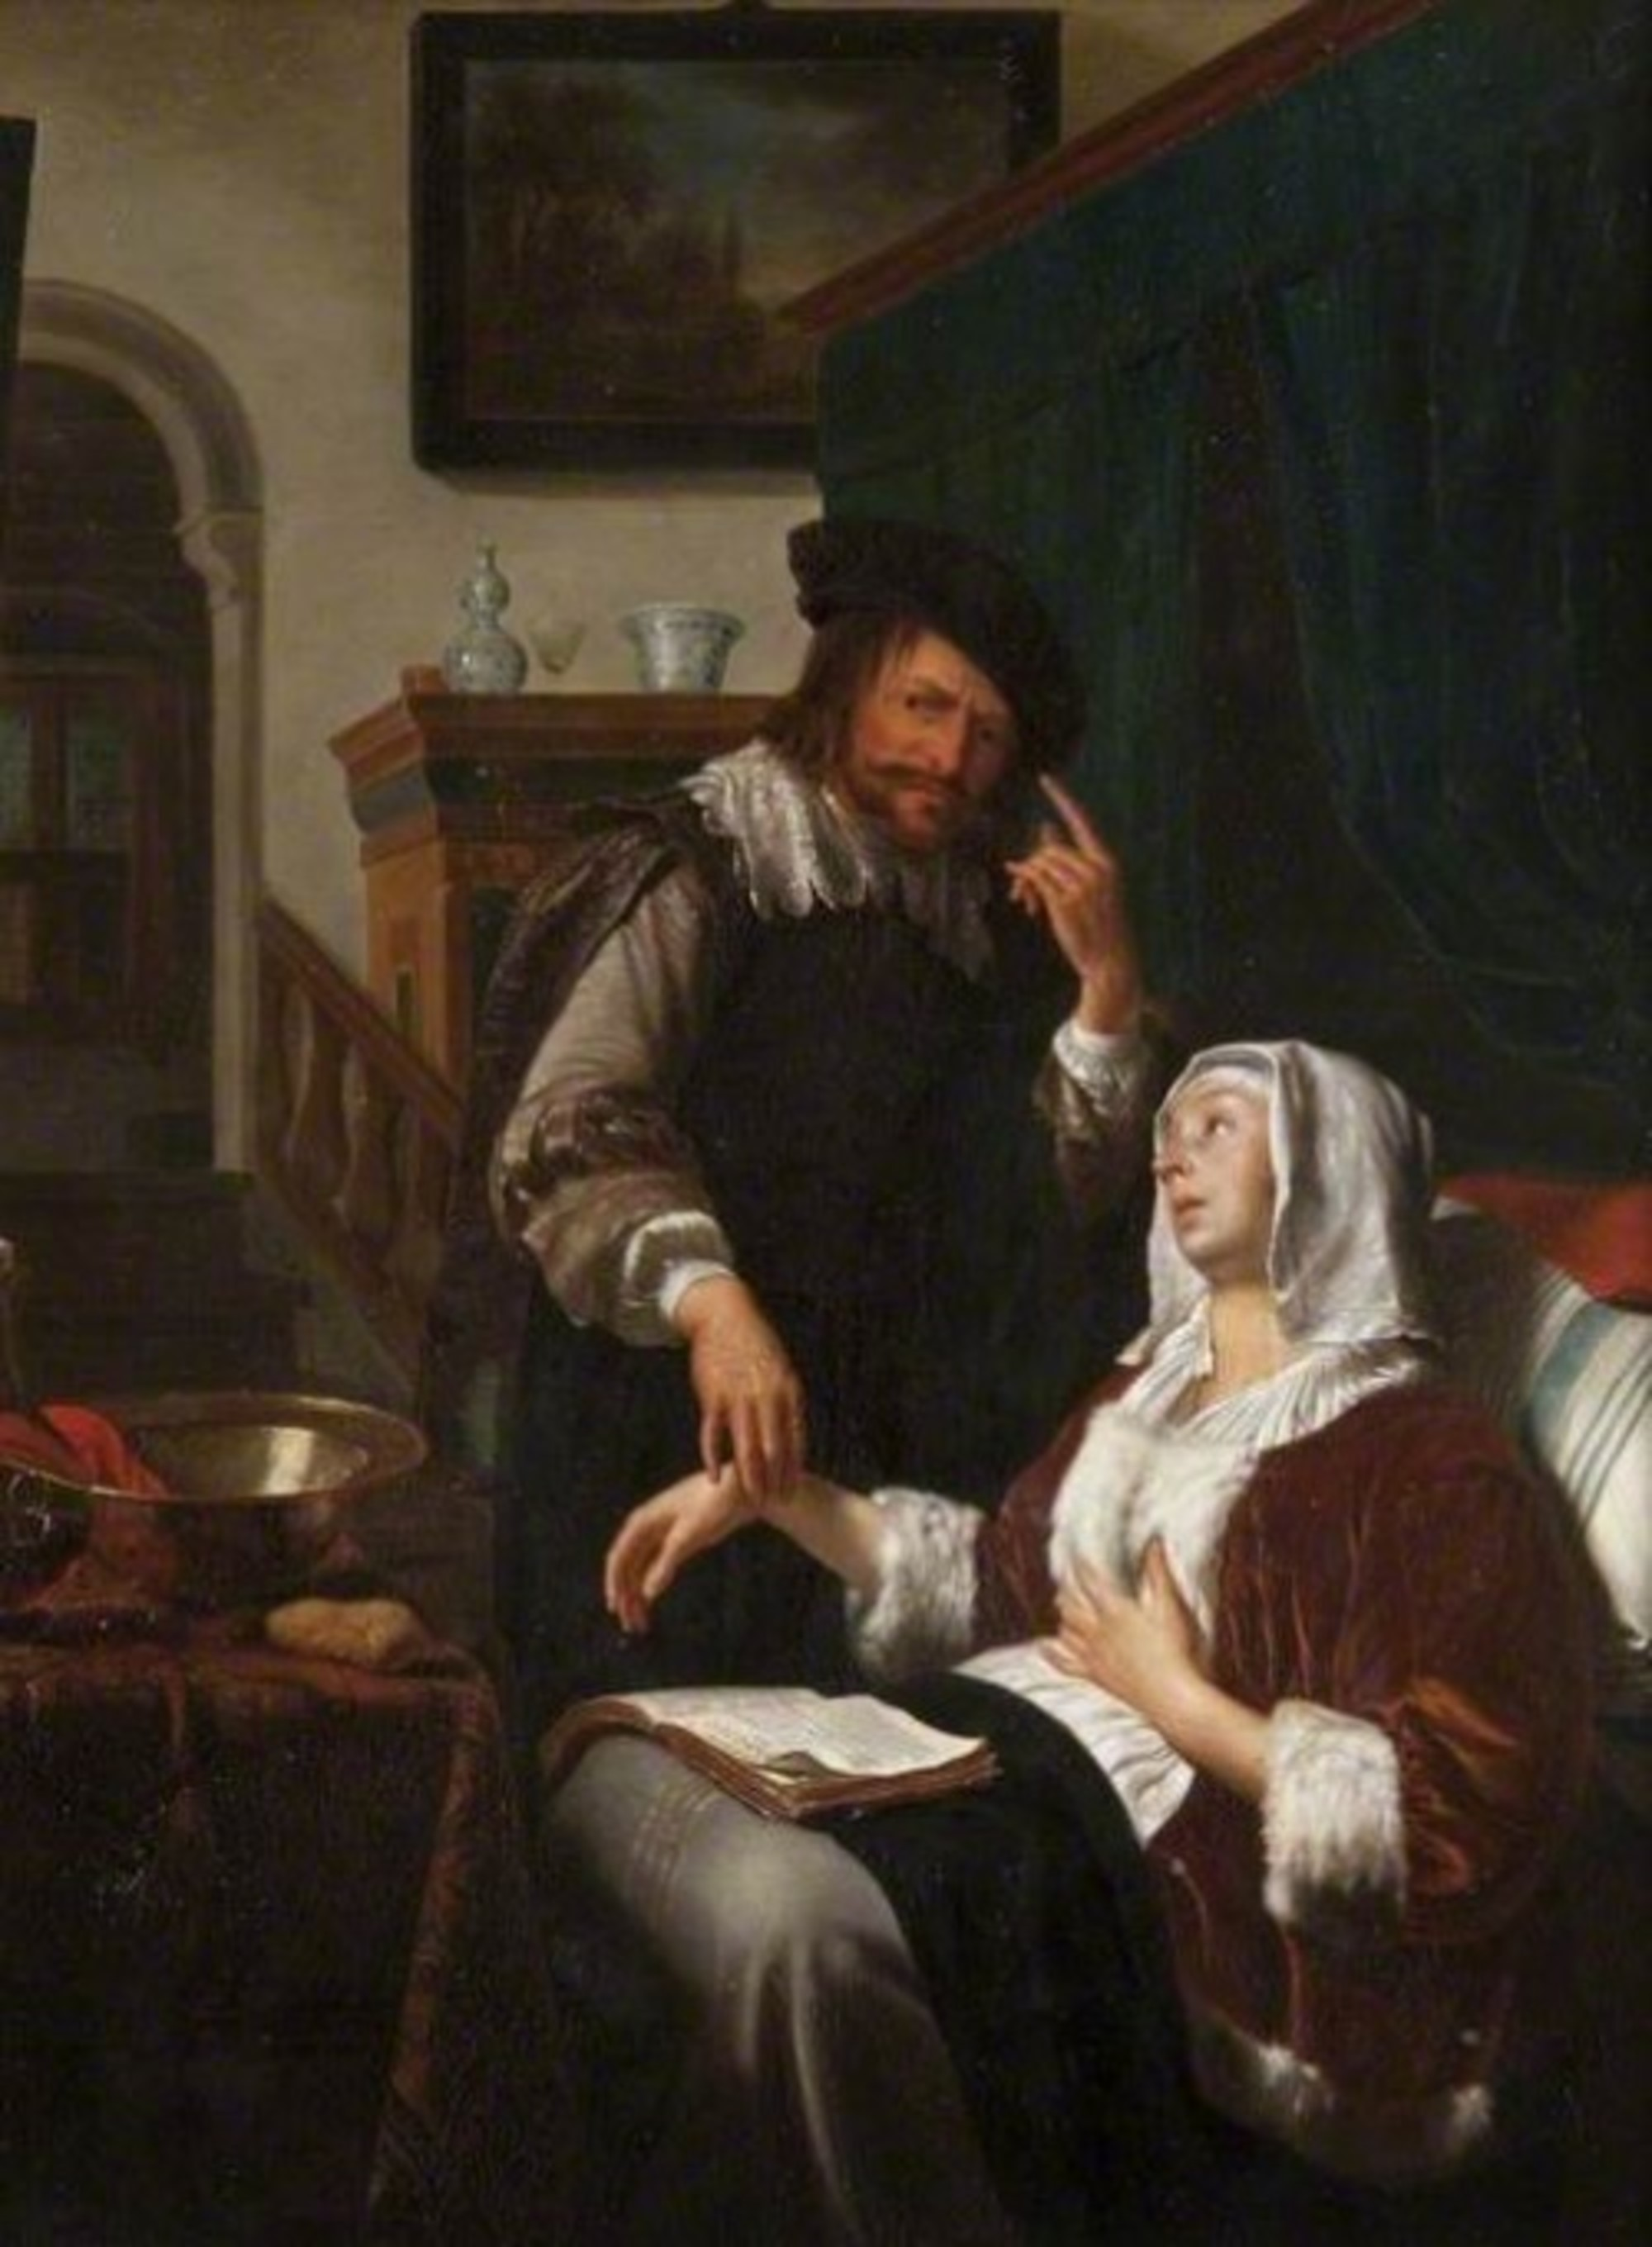 Frans-van-Mieris-I---A-Sick-Woman-and-Her-Doctor-GL-GM-108.jpg